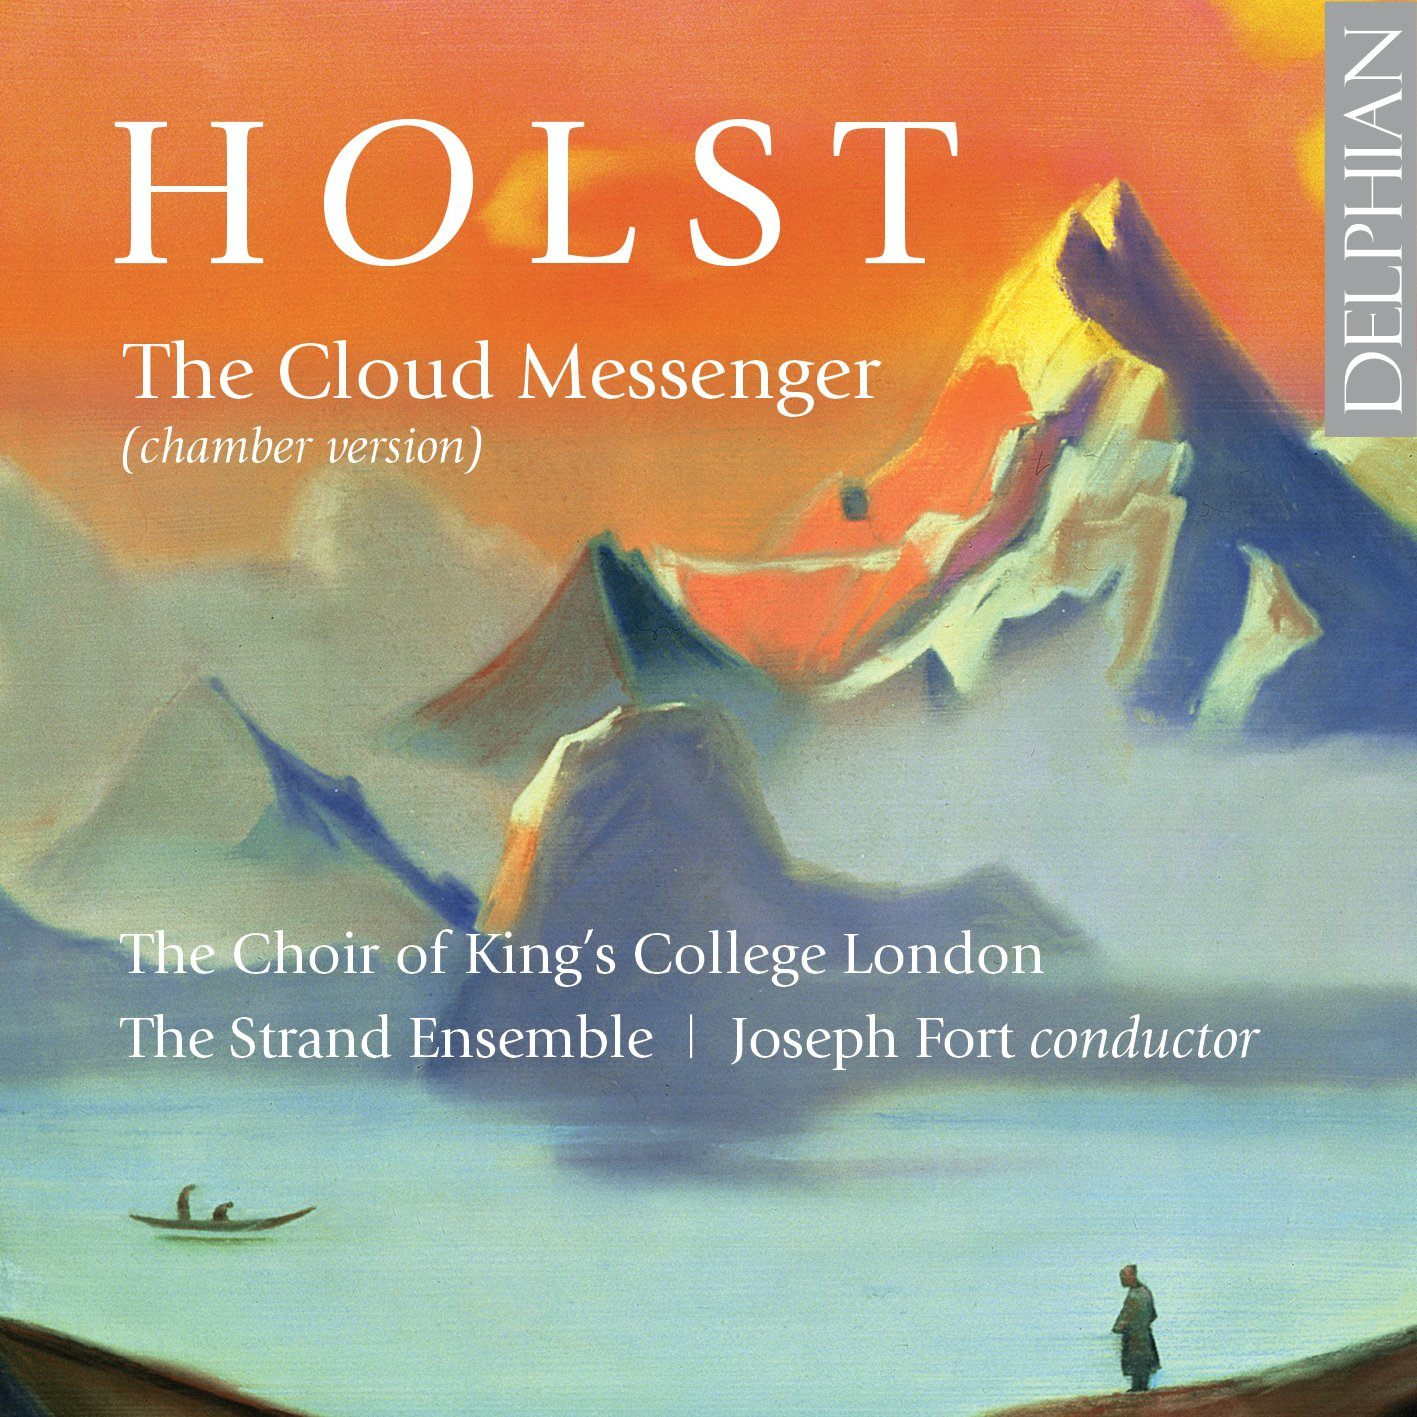 Holst: The Cloud Messenger CD Delphian Records